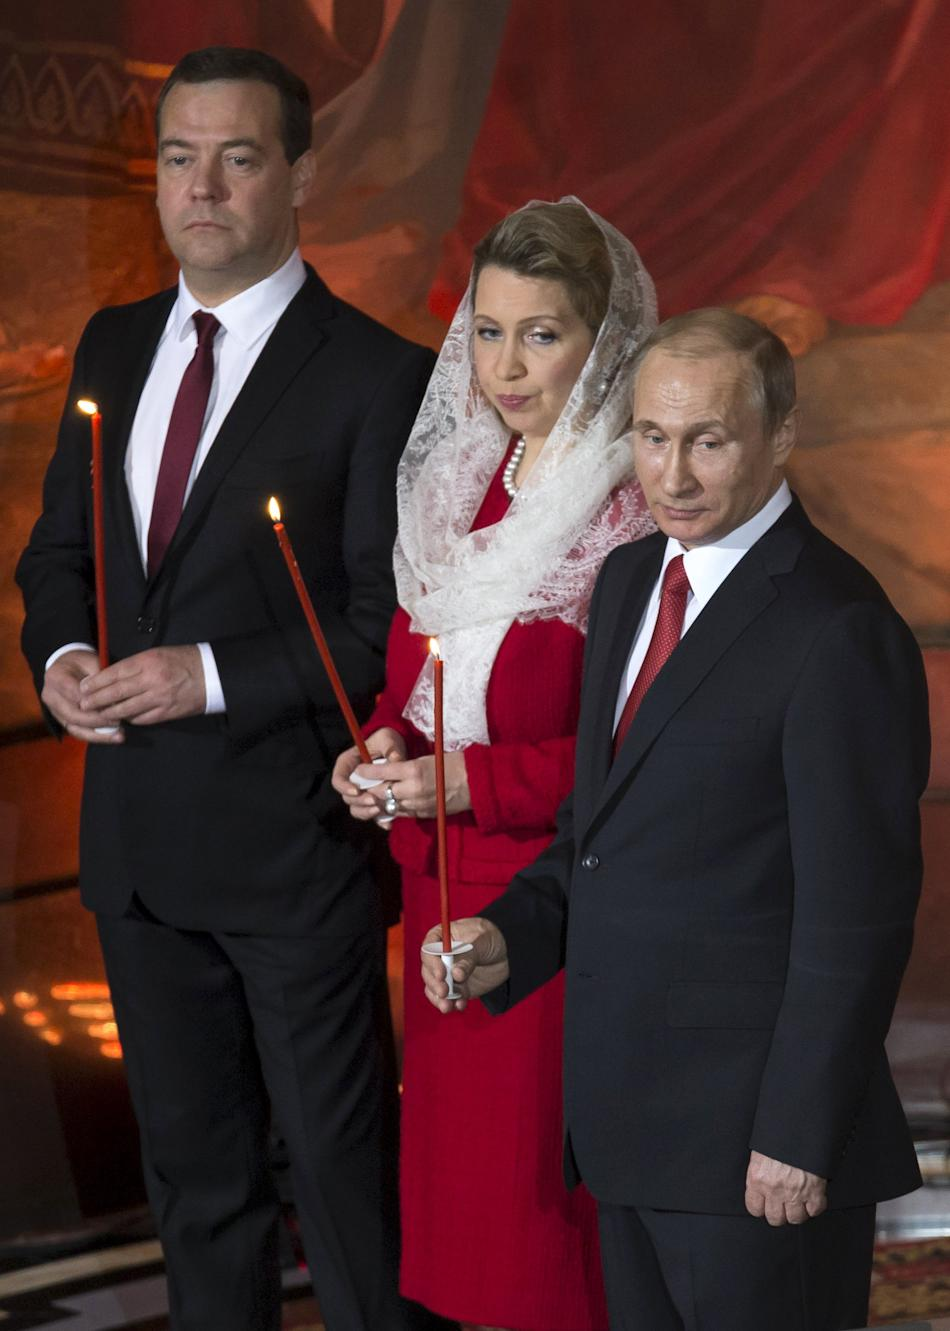 Russian President Putin, PM Medvedev and his wife Svetlana attend the Orthodox Easter service in Moscow